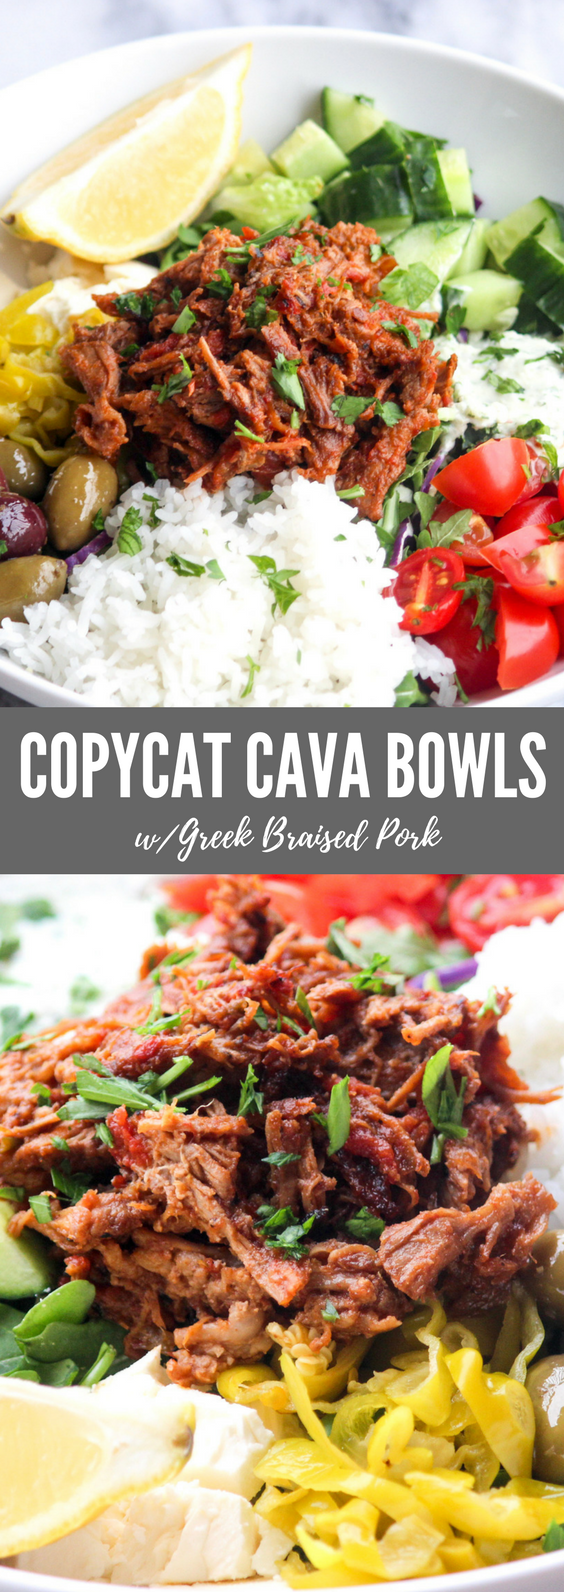 Copycat Cava Bowls with Braised Pork | All the Healthy Things